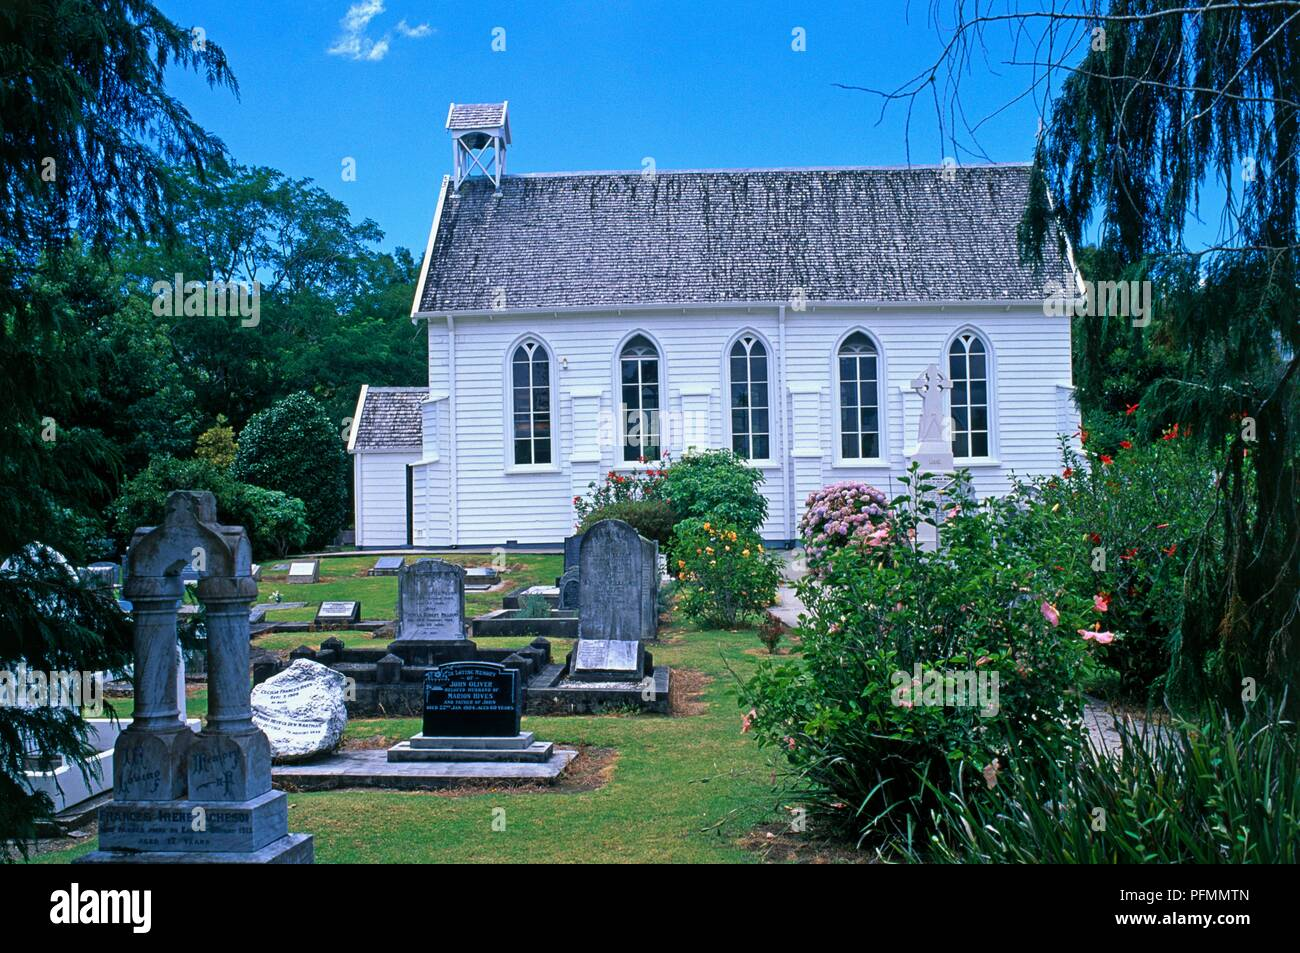 New Zealand, Northland, Russell, Christ Church, the country's oldest surviving Church, built in 1836 - Stock Image